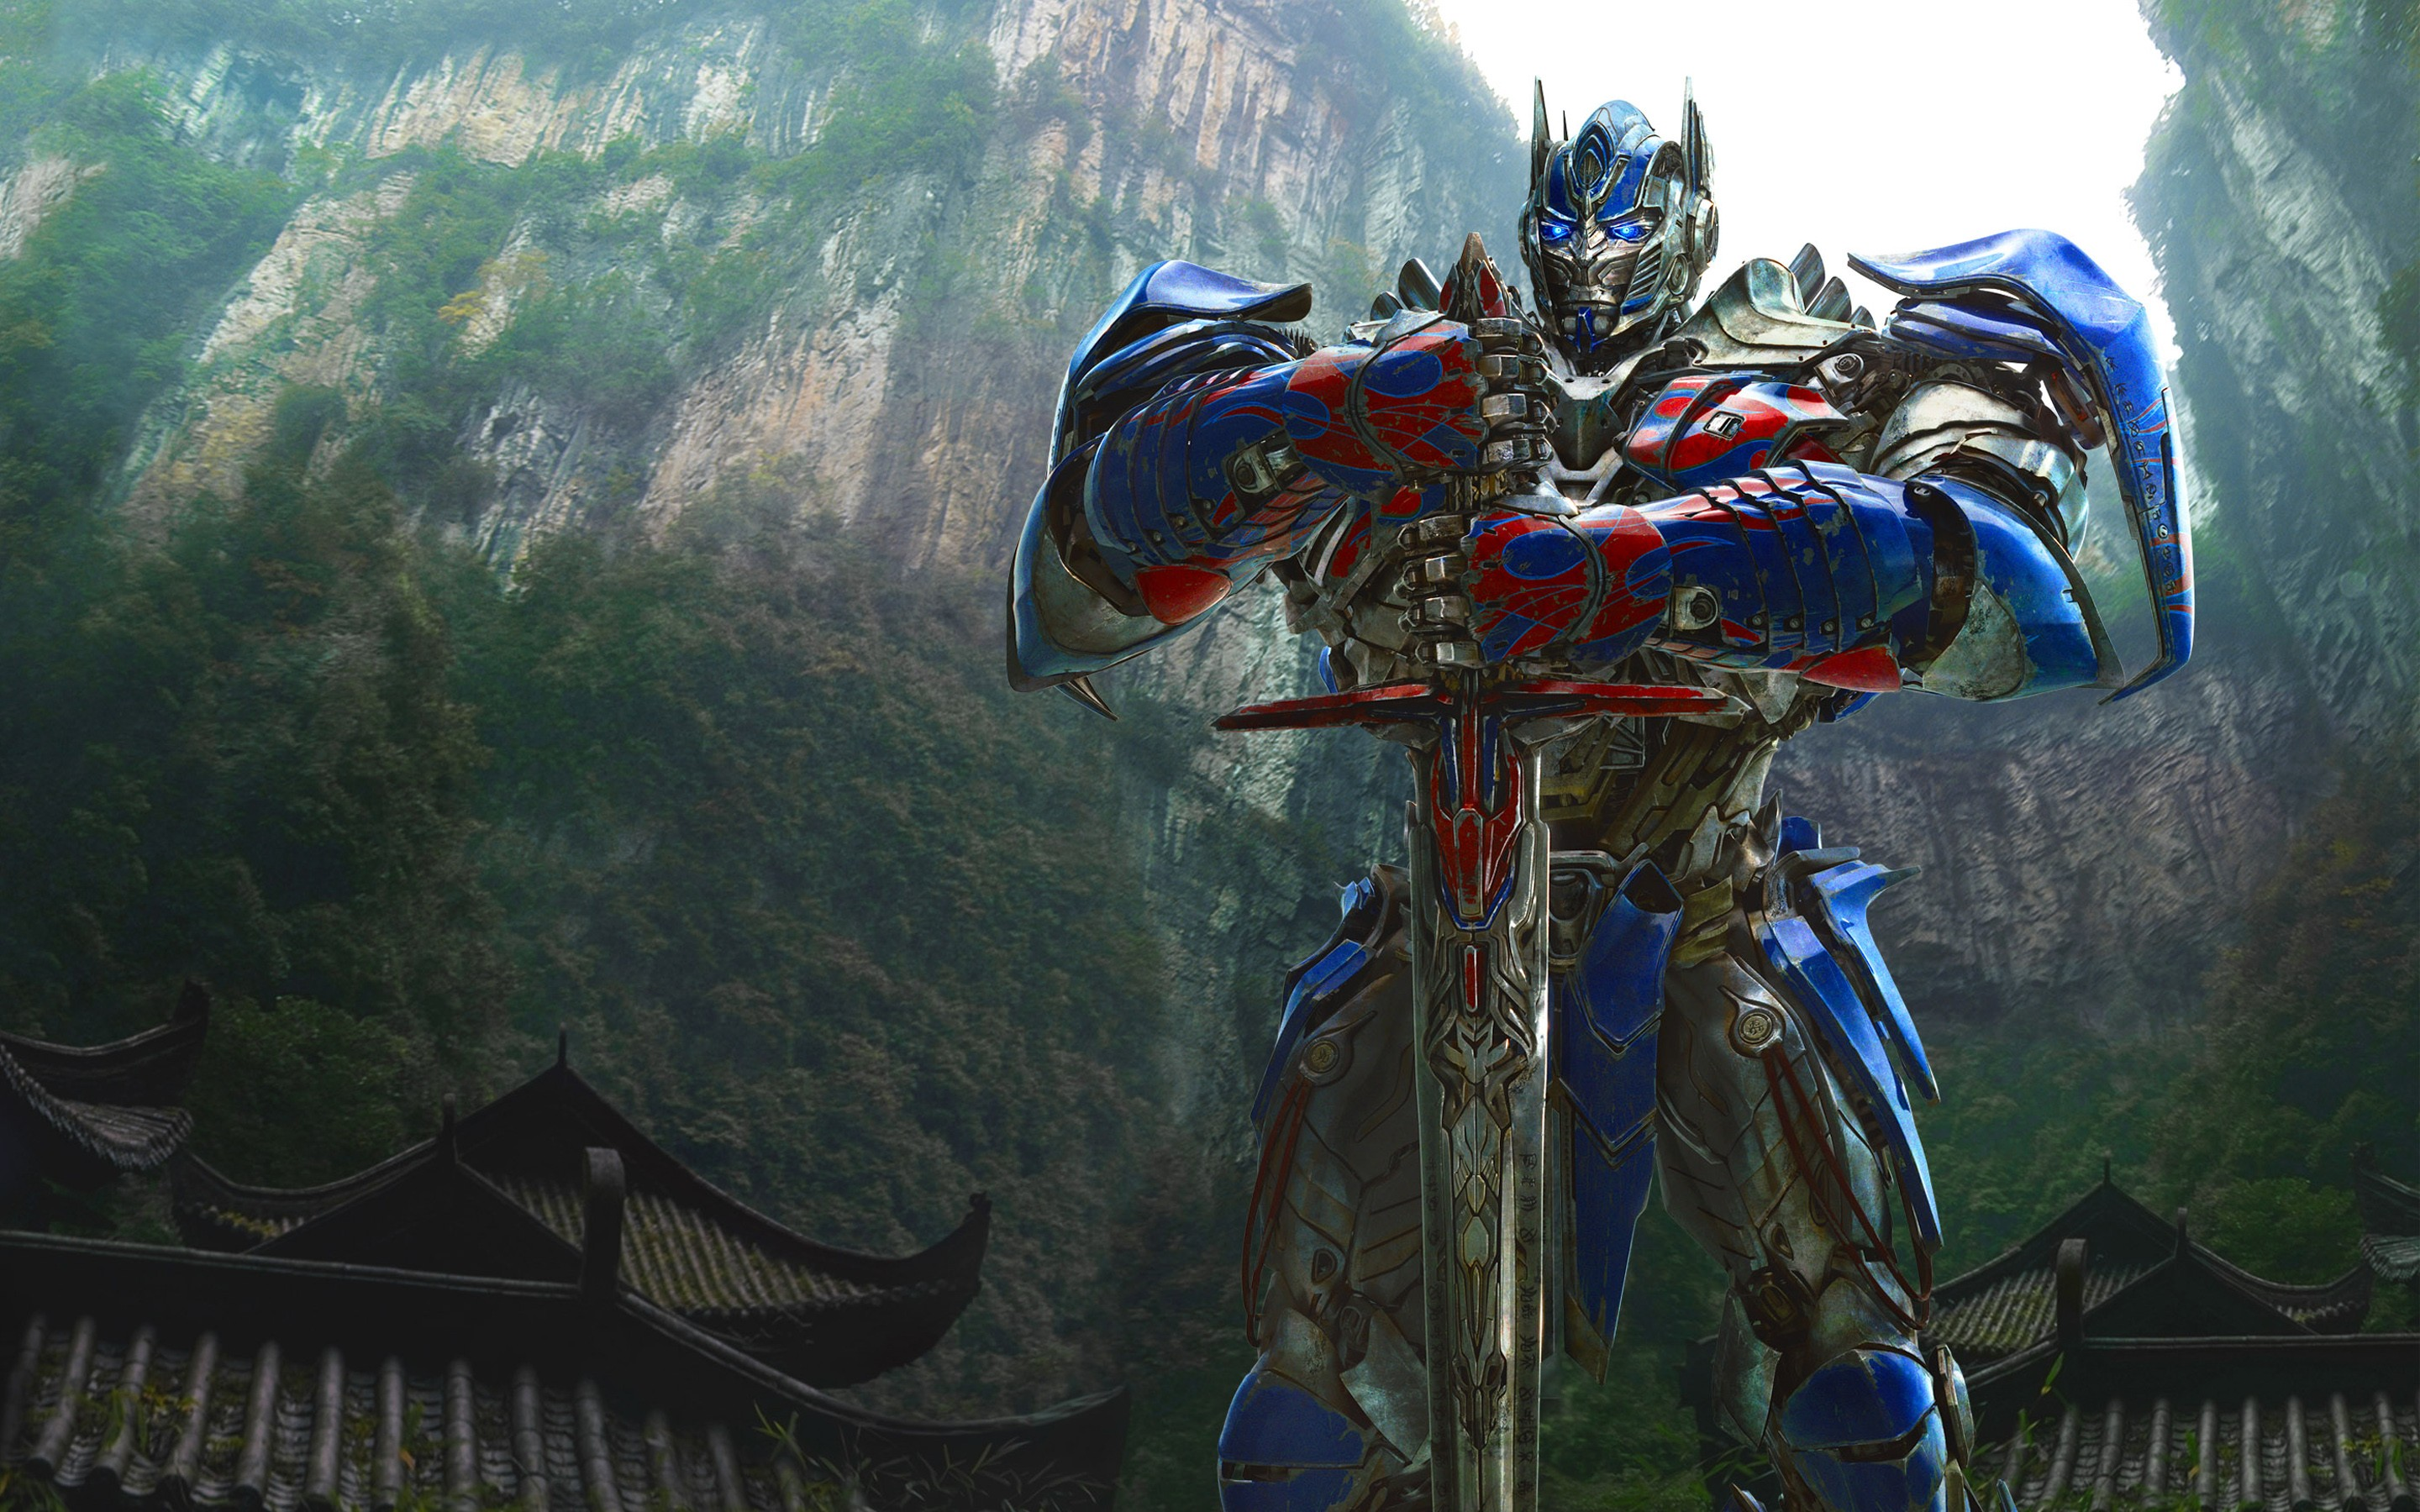 1366x768 optimus prime in transformers 1366x768 resolution hd 4k